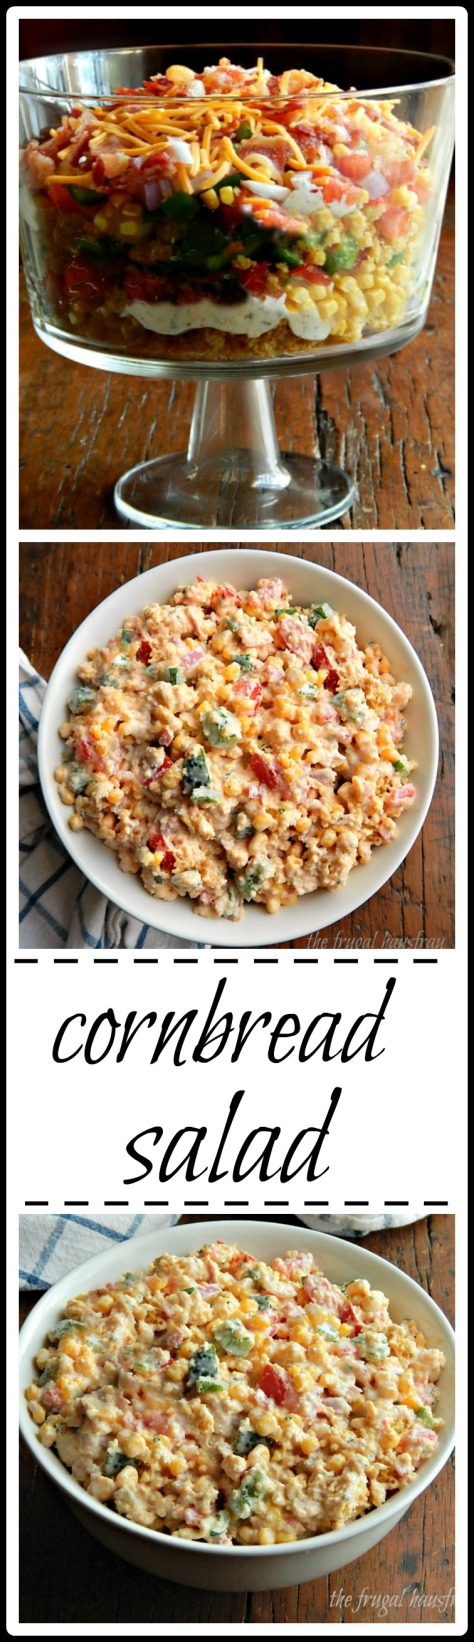 Cornbread Salad: If you're from the South you might know this and if not, it's not as crazy as it sounds but it is crazy good!